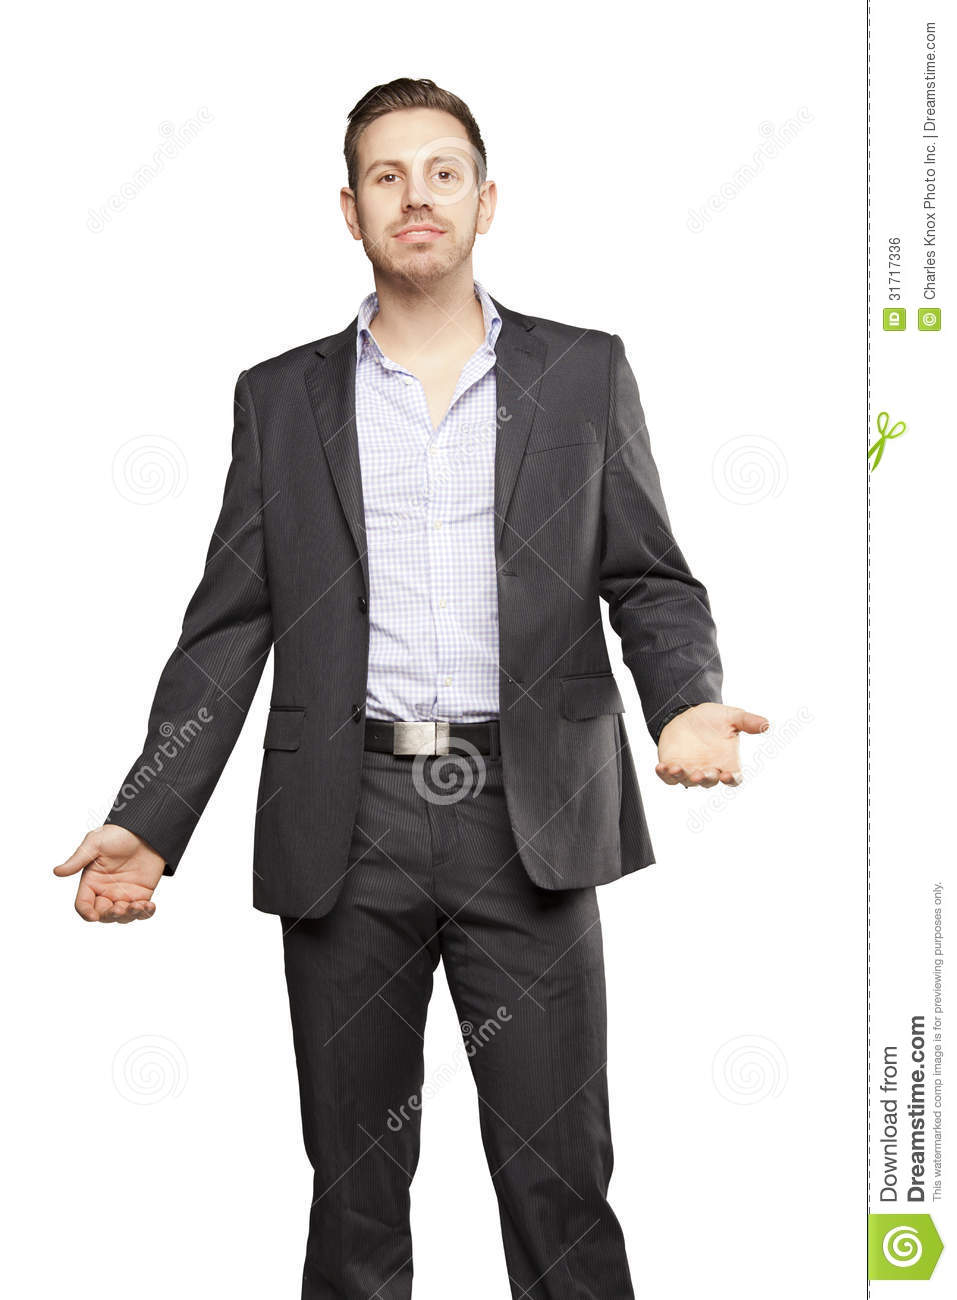 Young Man In Black Suit Gesturing Royalty Free Stock Image ...